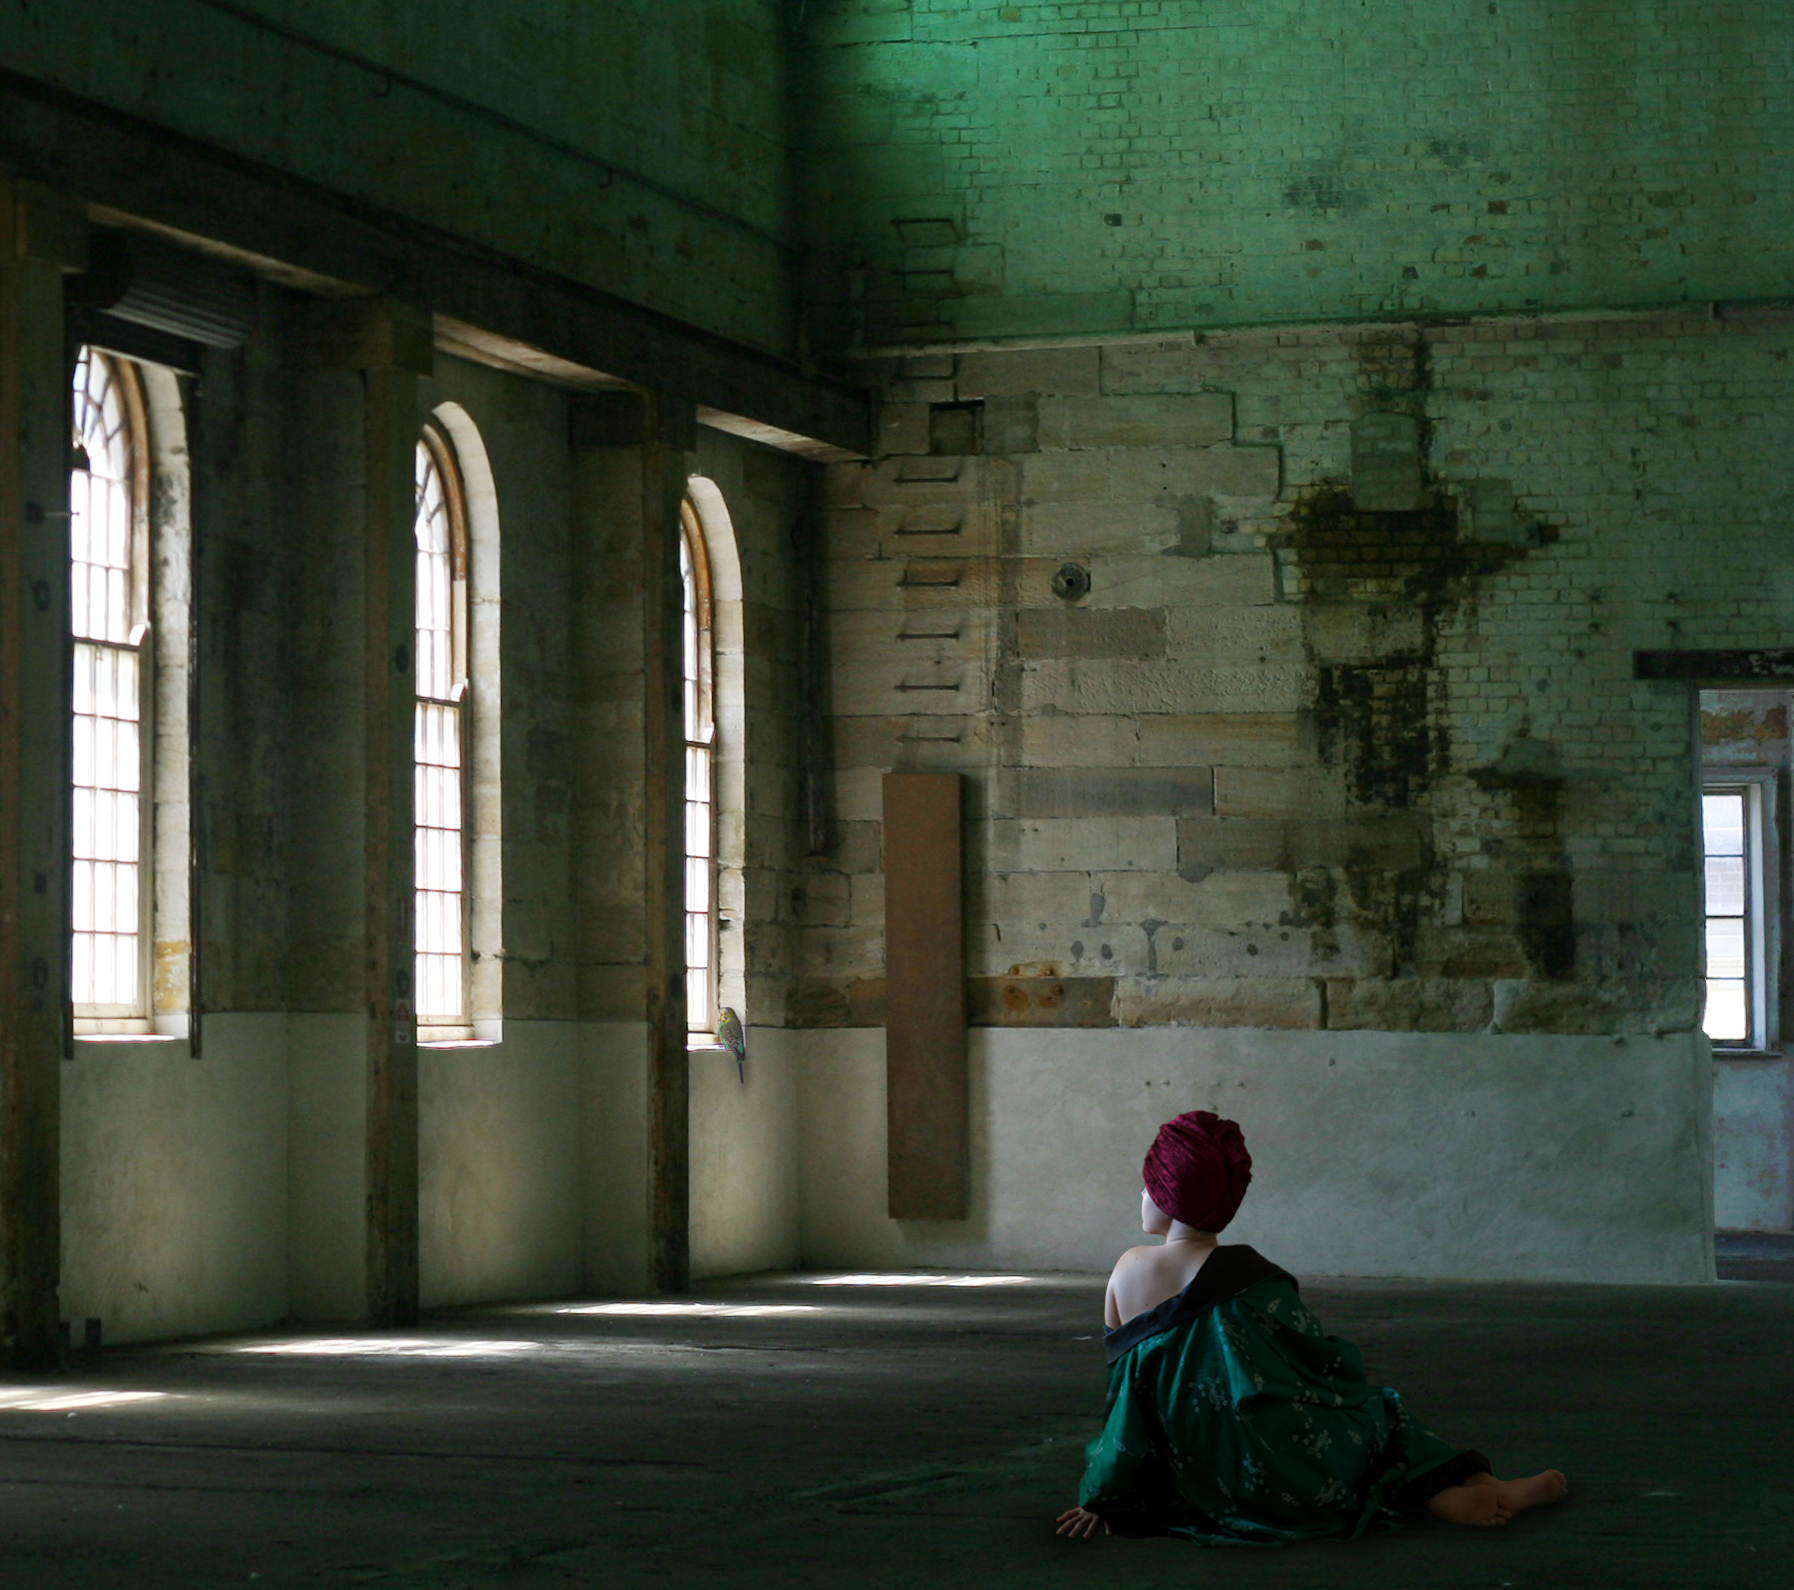 Listen - The Girl in the Red Turban